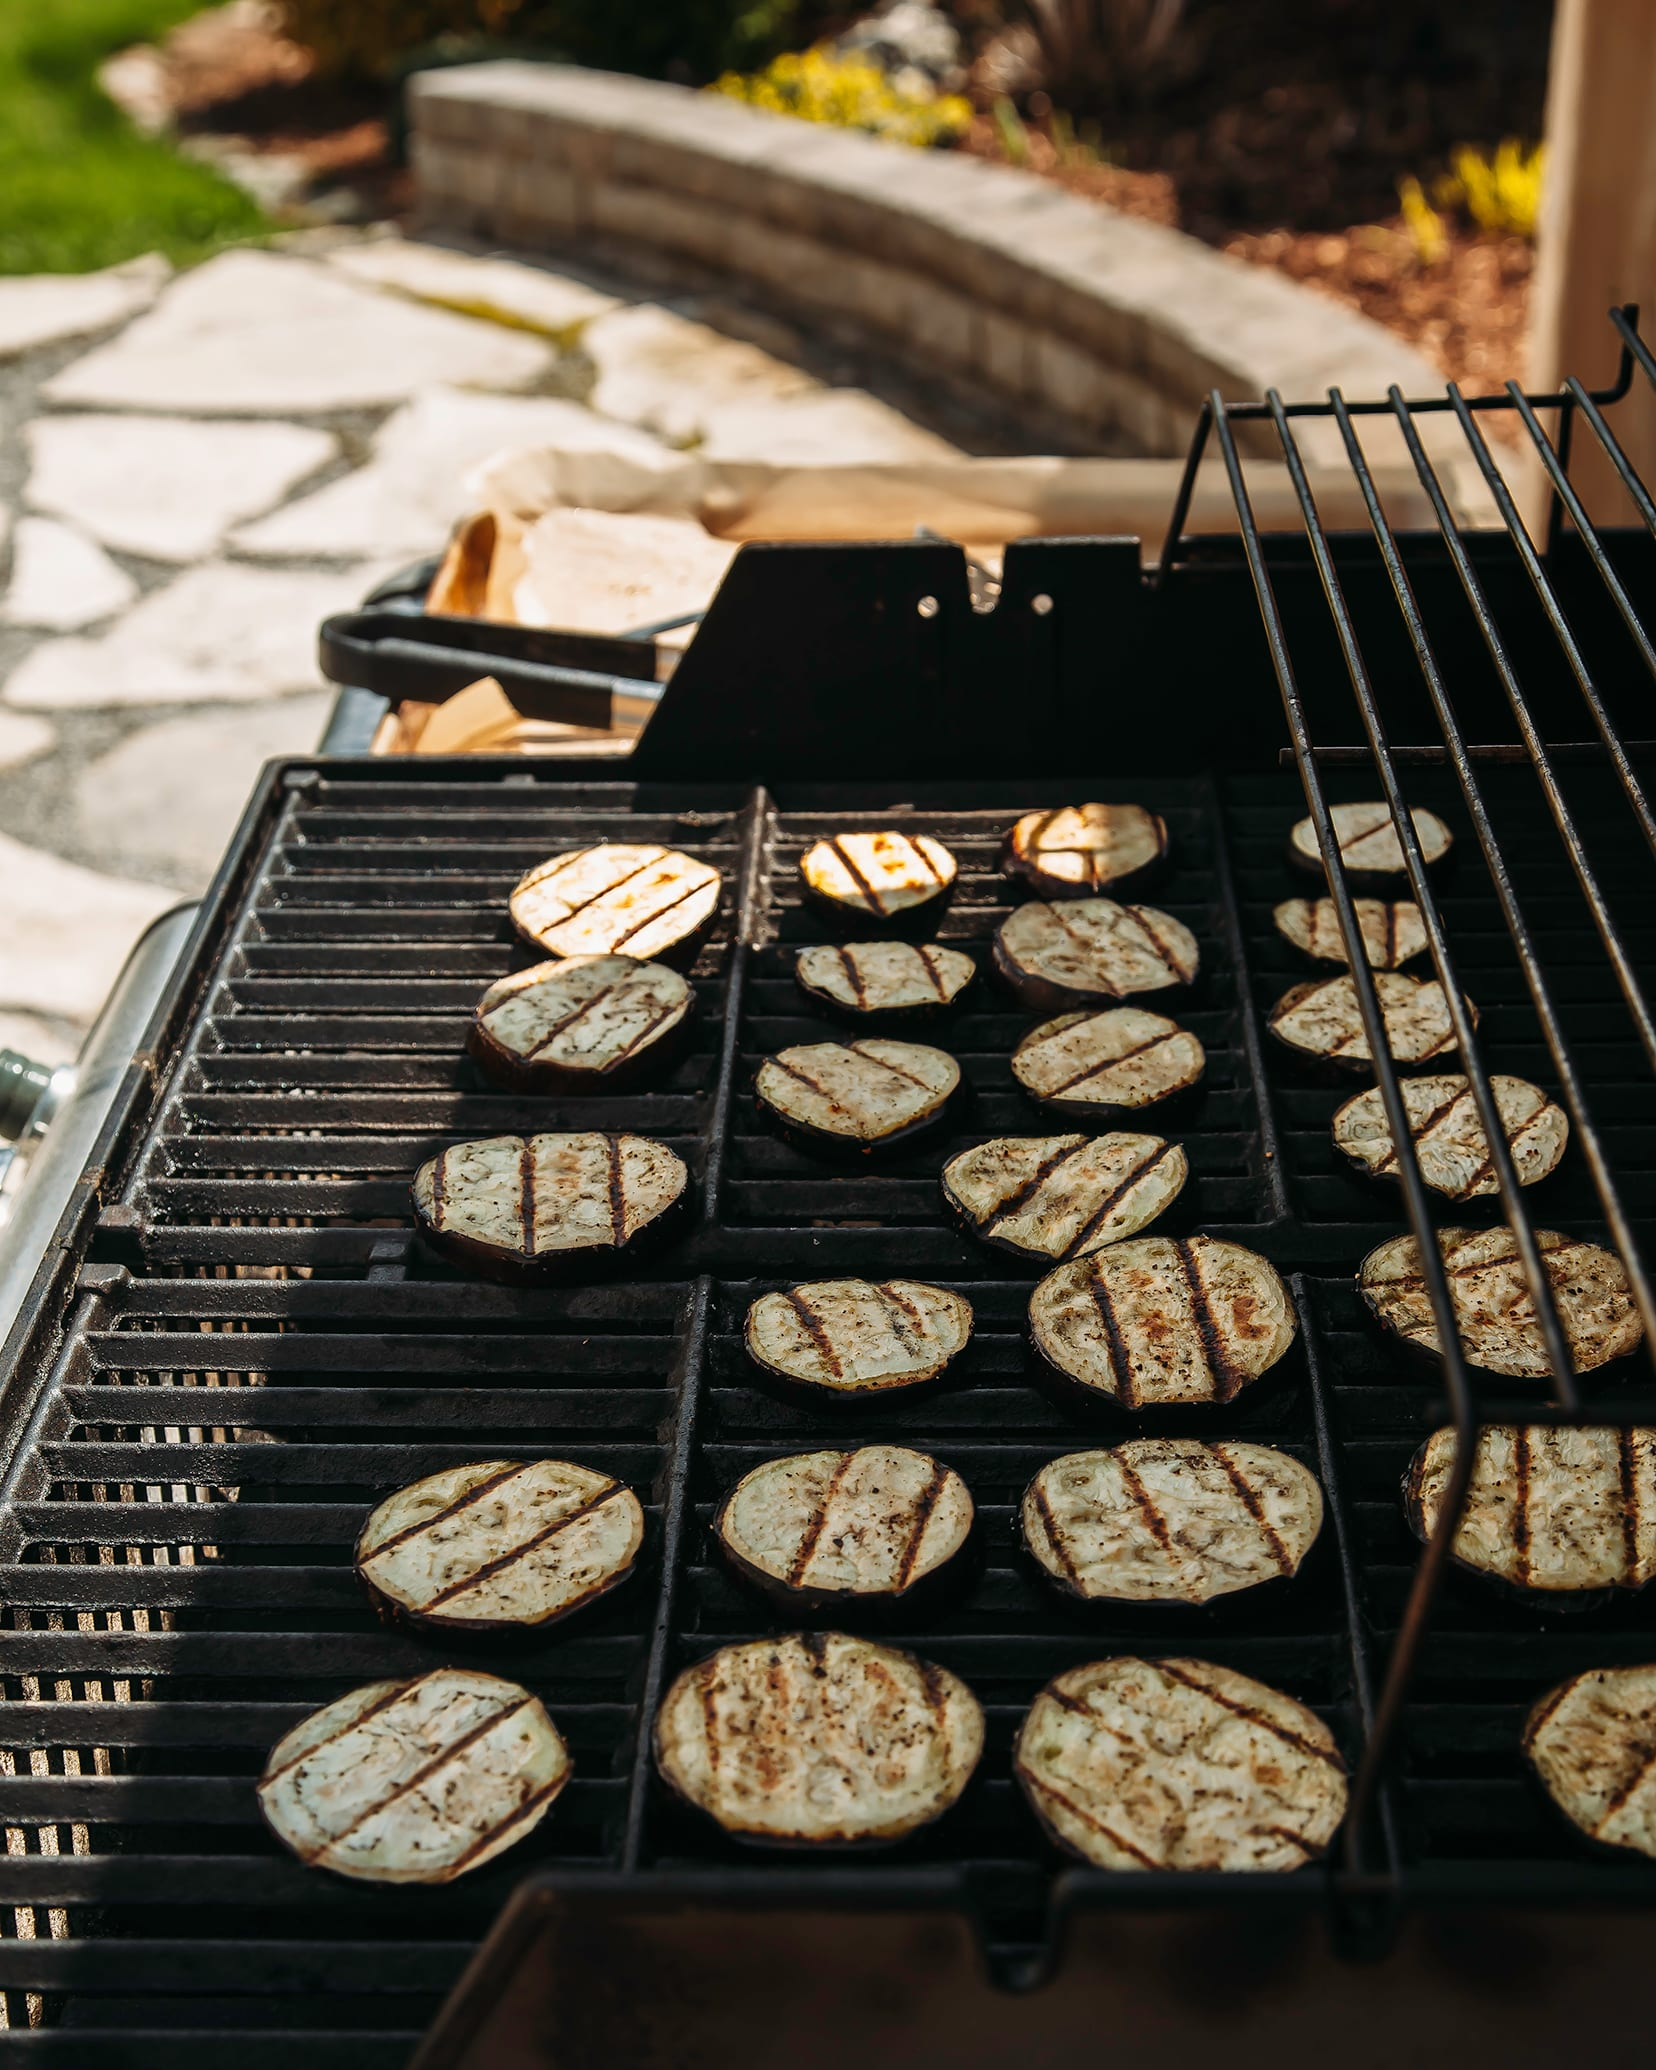 A 3/4 angle shot of a grill outdoors with a bunch of eggplant slices being cooked on the grates.